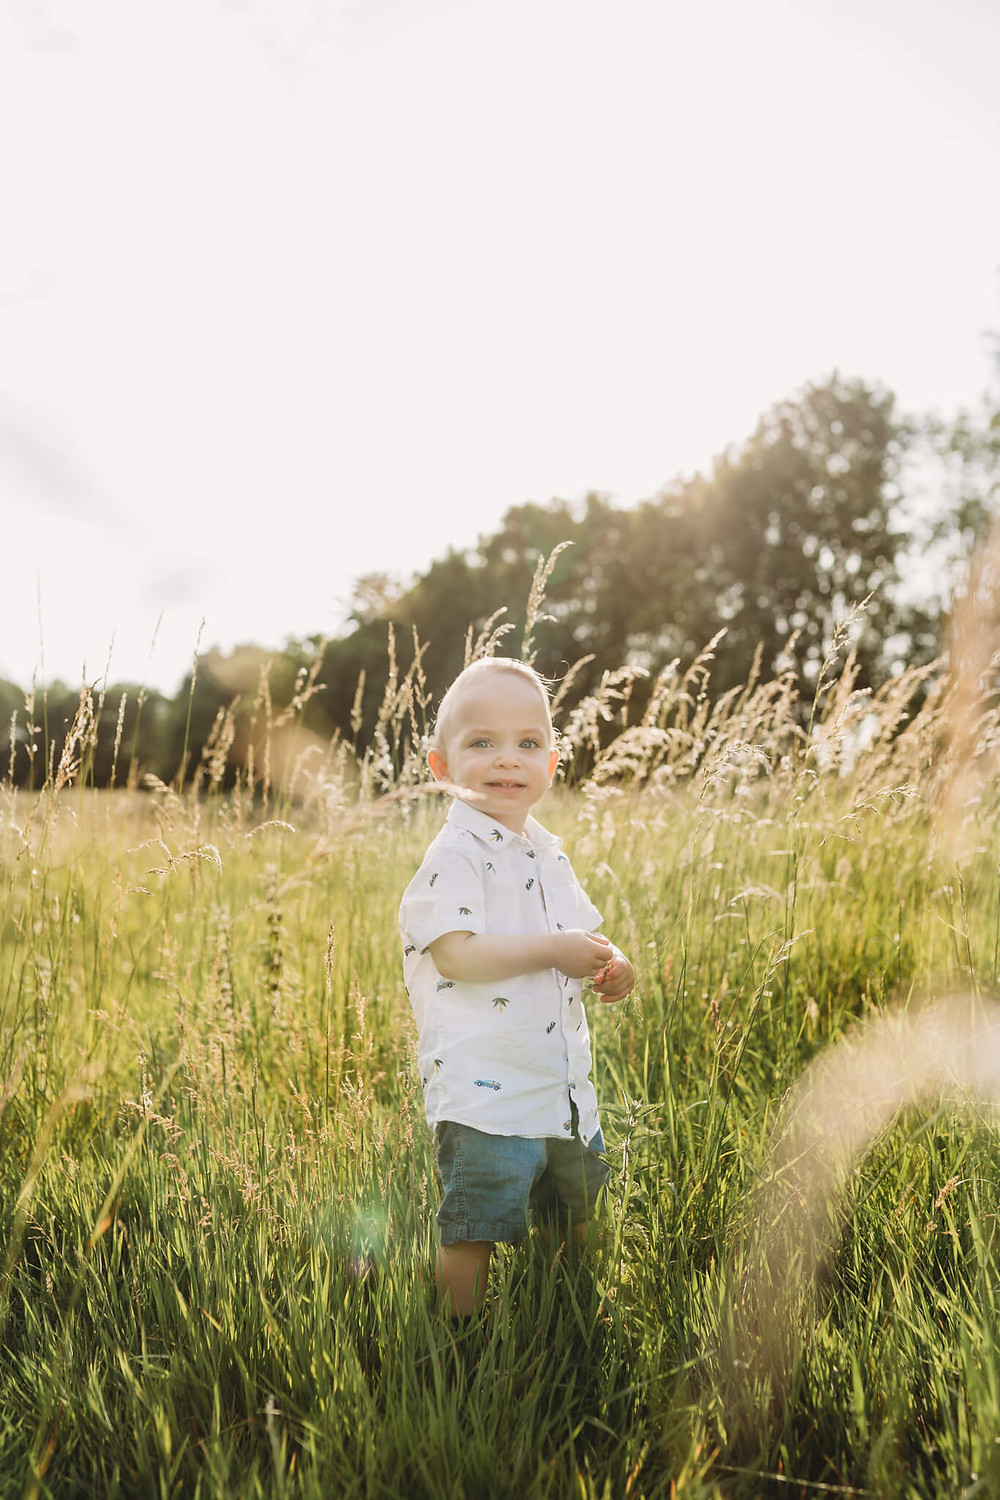 1 year old boy standing in long grass, Hertfordshire.